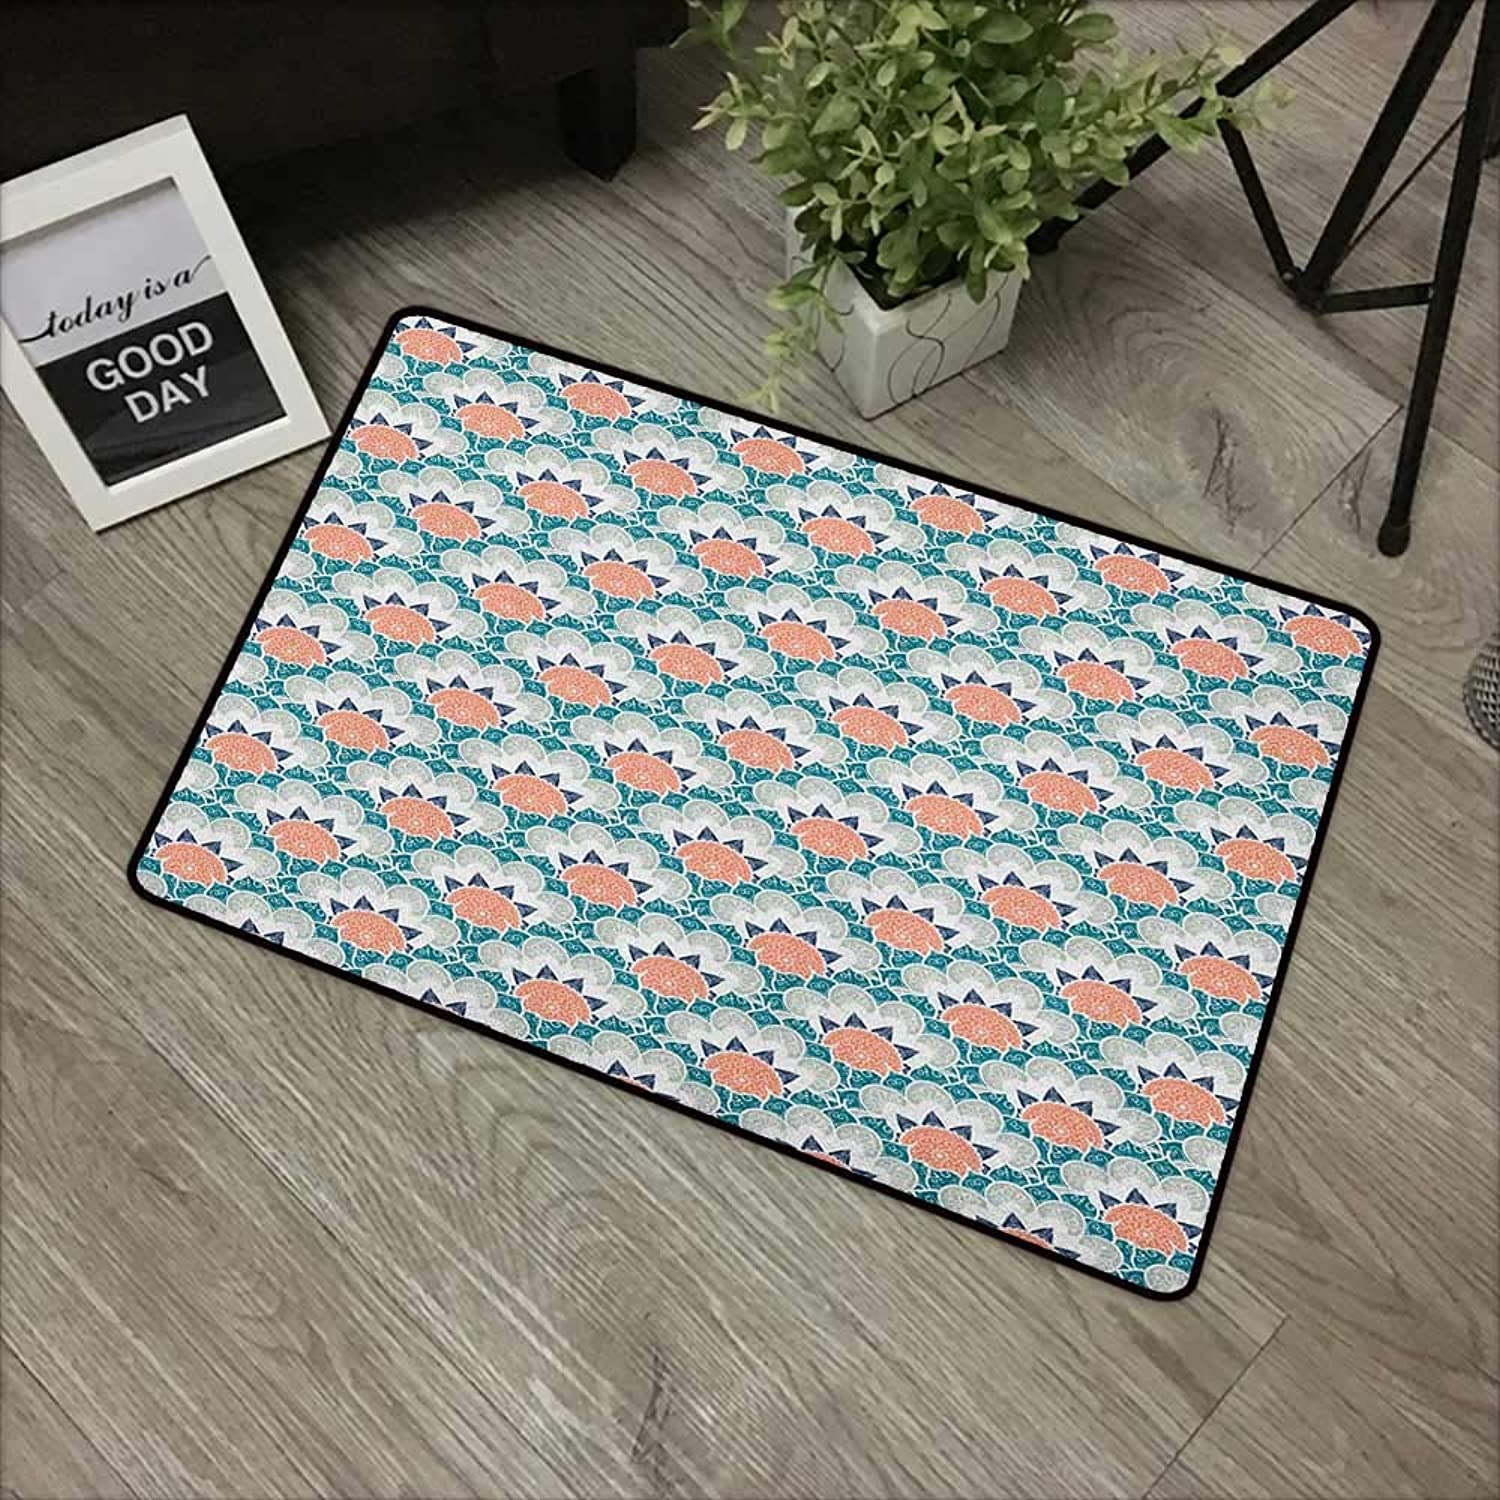 Interior Door mat W35 x L59 INCH Mandala,Hand Drawn Motifs from Middle Eastern Cultures Flower Pattern Ornamental Swirls, Multicolor Easy to Clean, no Deformation, no Fading Non-Slip Door Mat Carpet